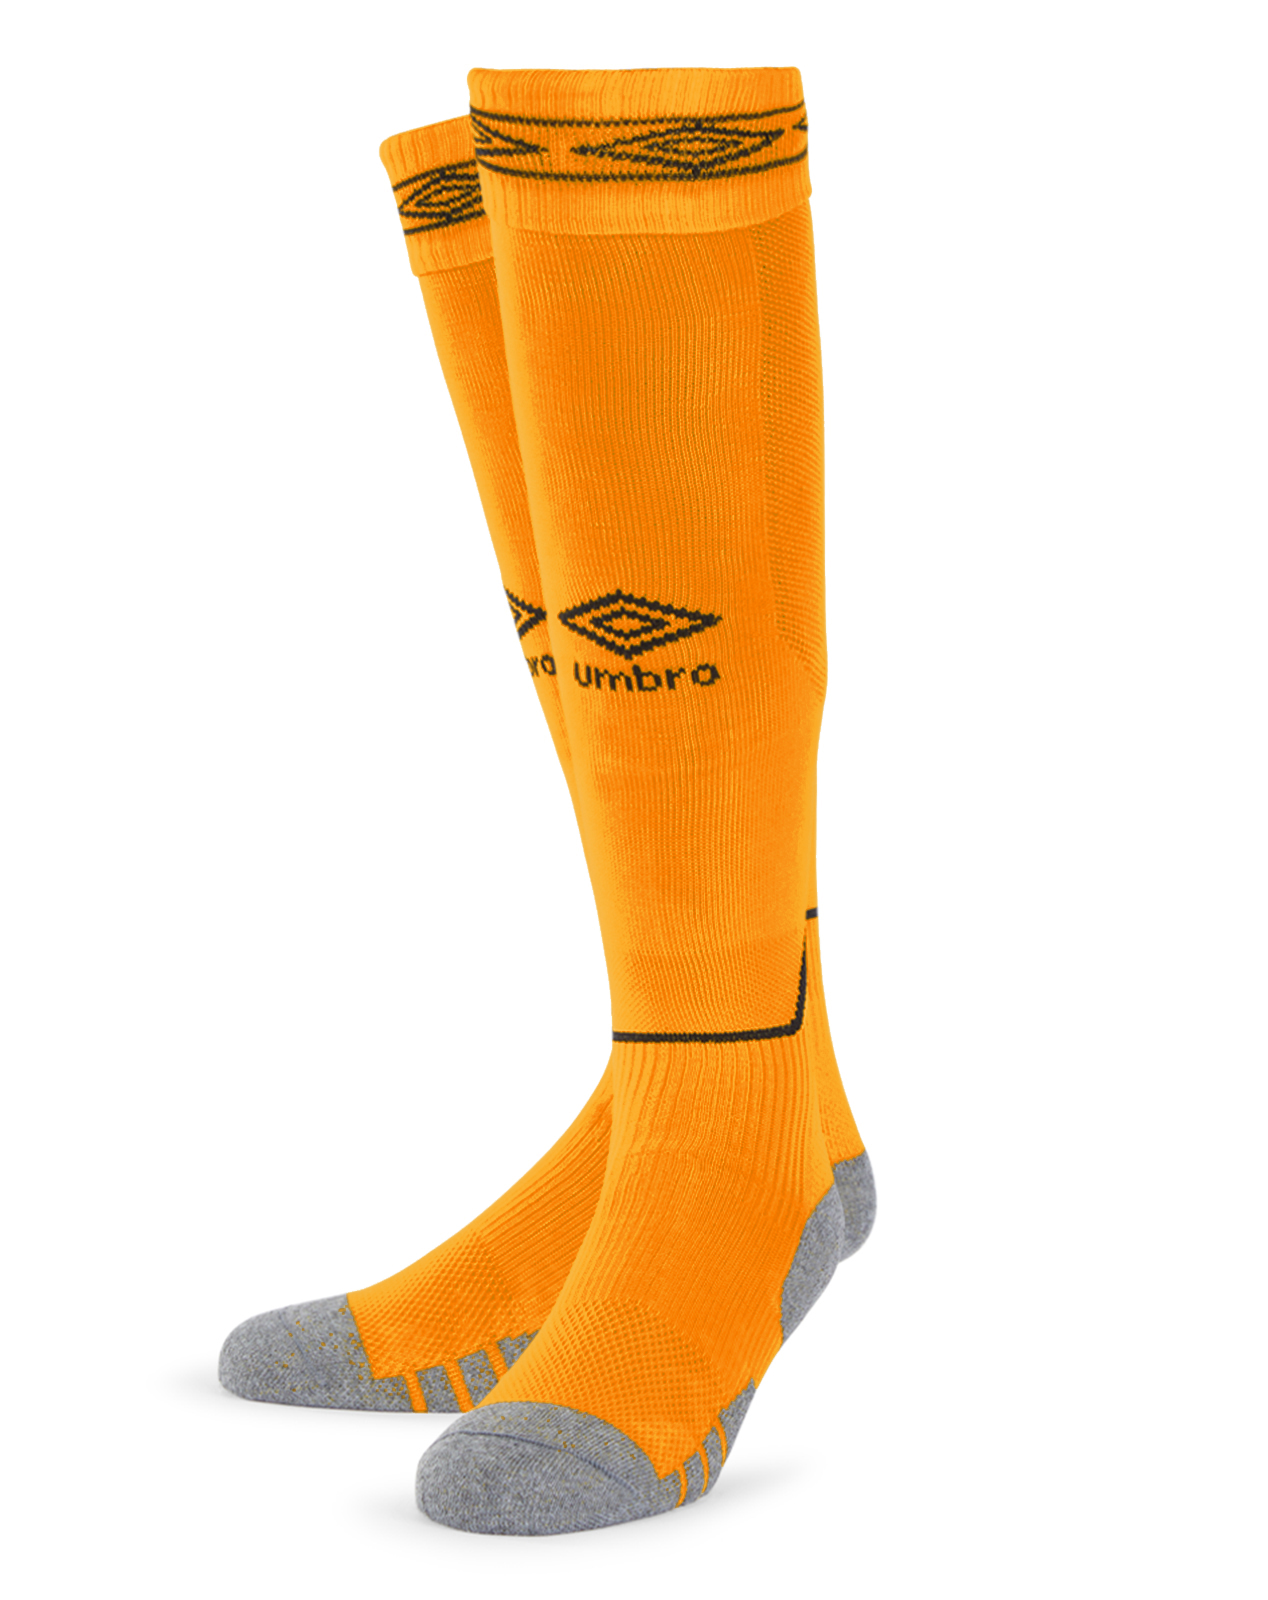 Umbro Diamond Top Socks in amber with black Diamond turnover design